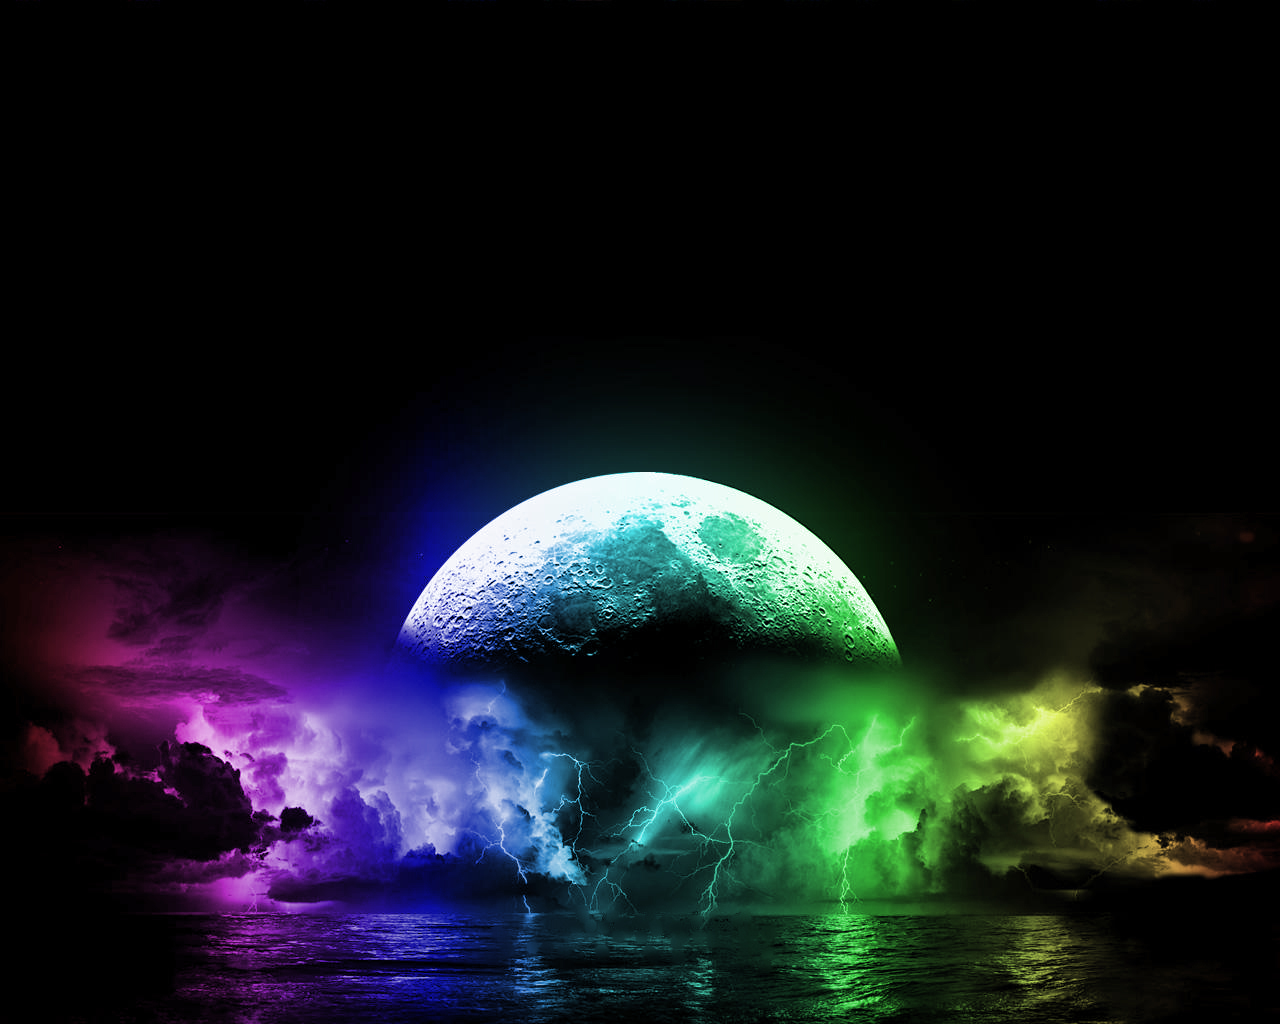 download wallpaper A really cool and colorful moon and lightning 1280x1024